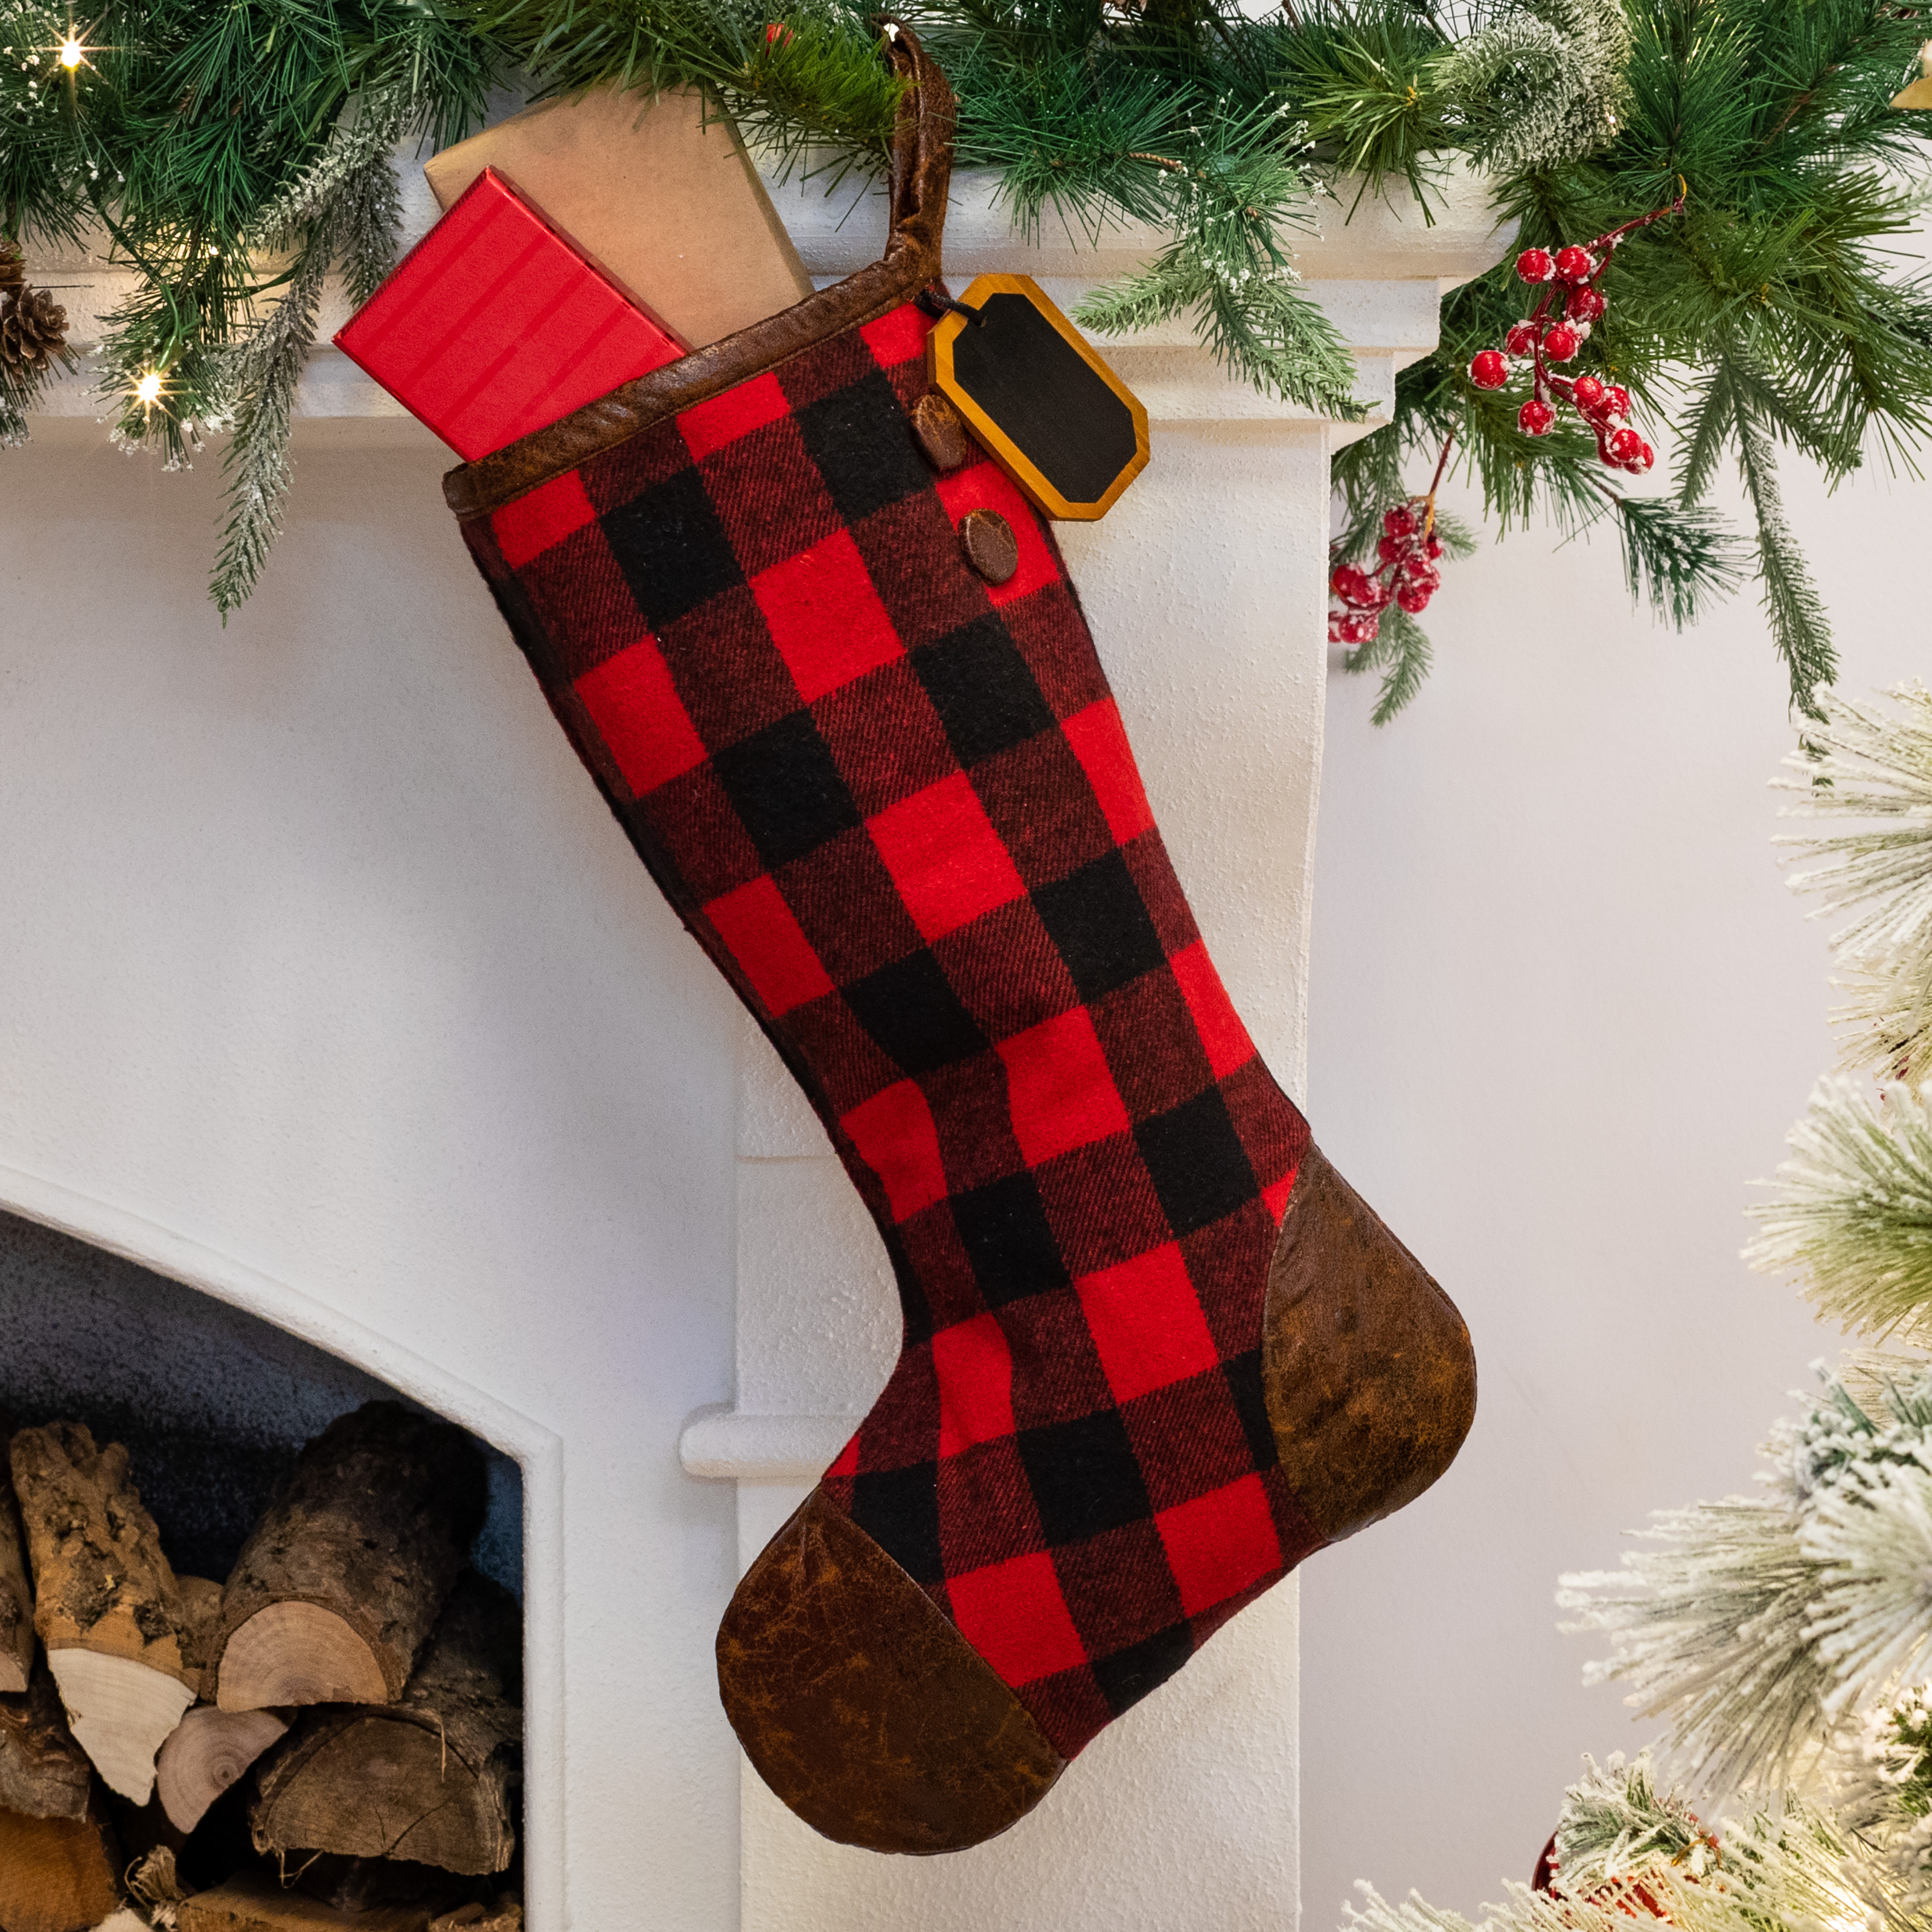 Belham Living Buffalo Plaid Christmas Stocking, 18.5""